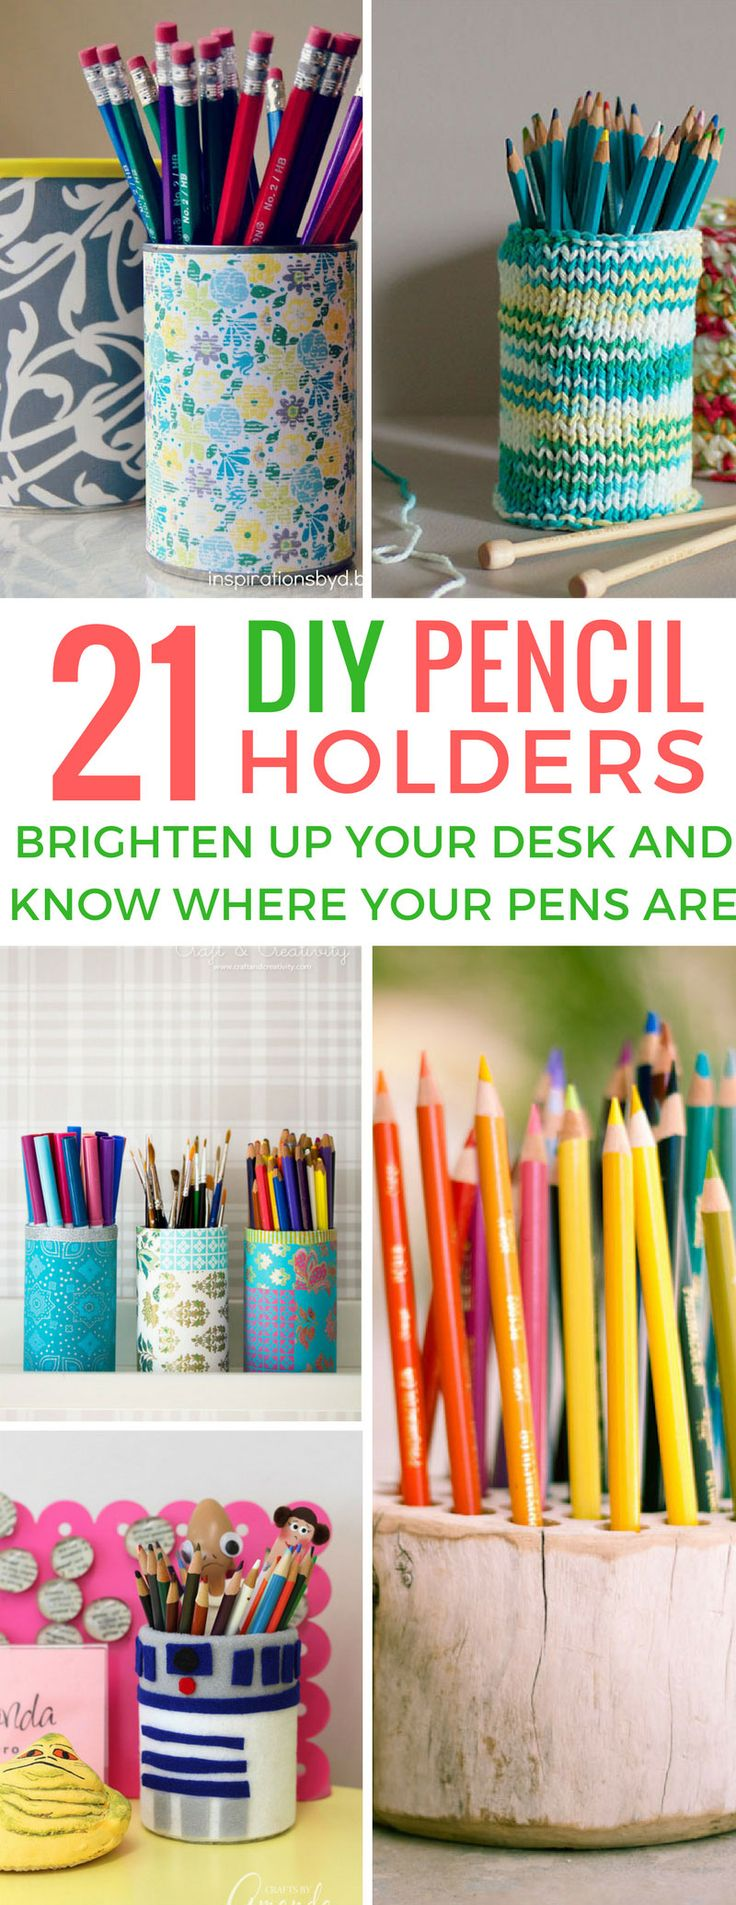 21 Brilliant DIY Pencil Holders You Can Make this Weekend